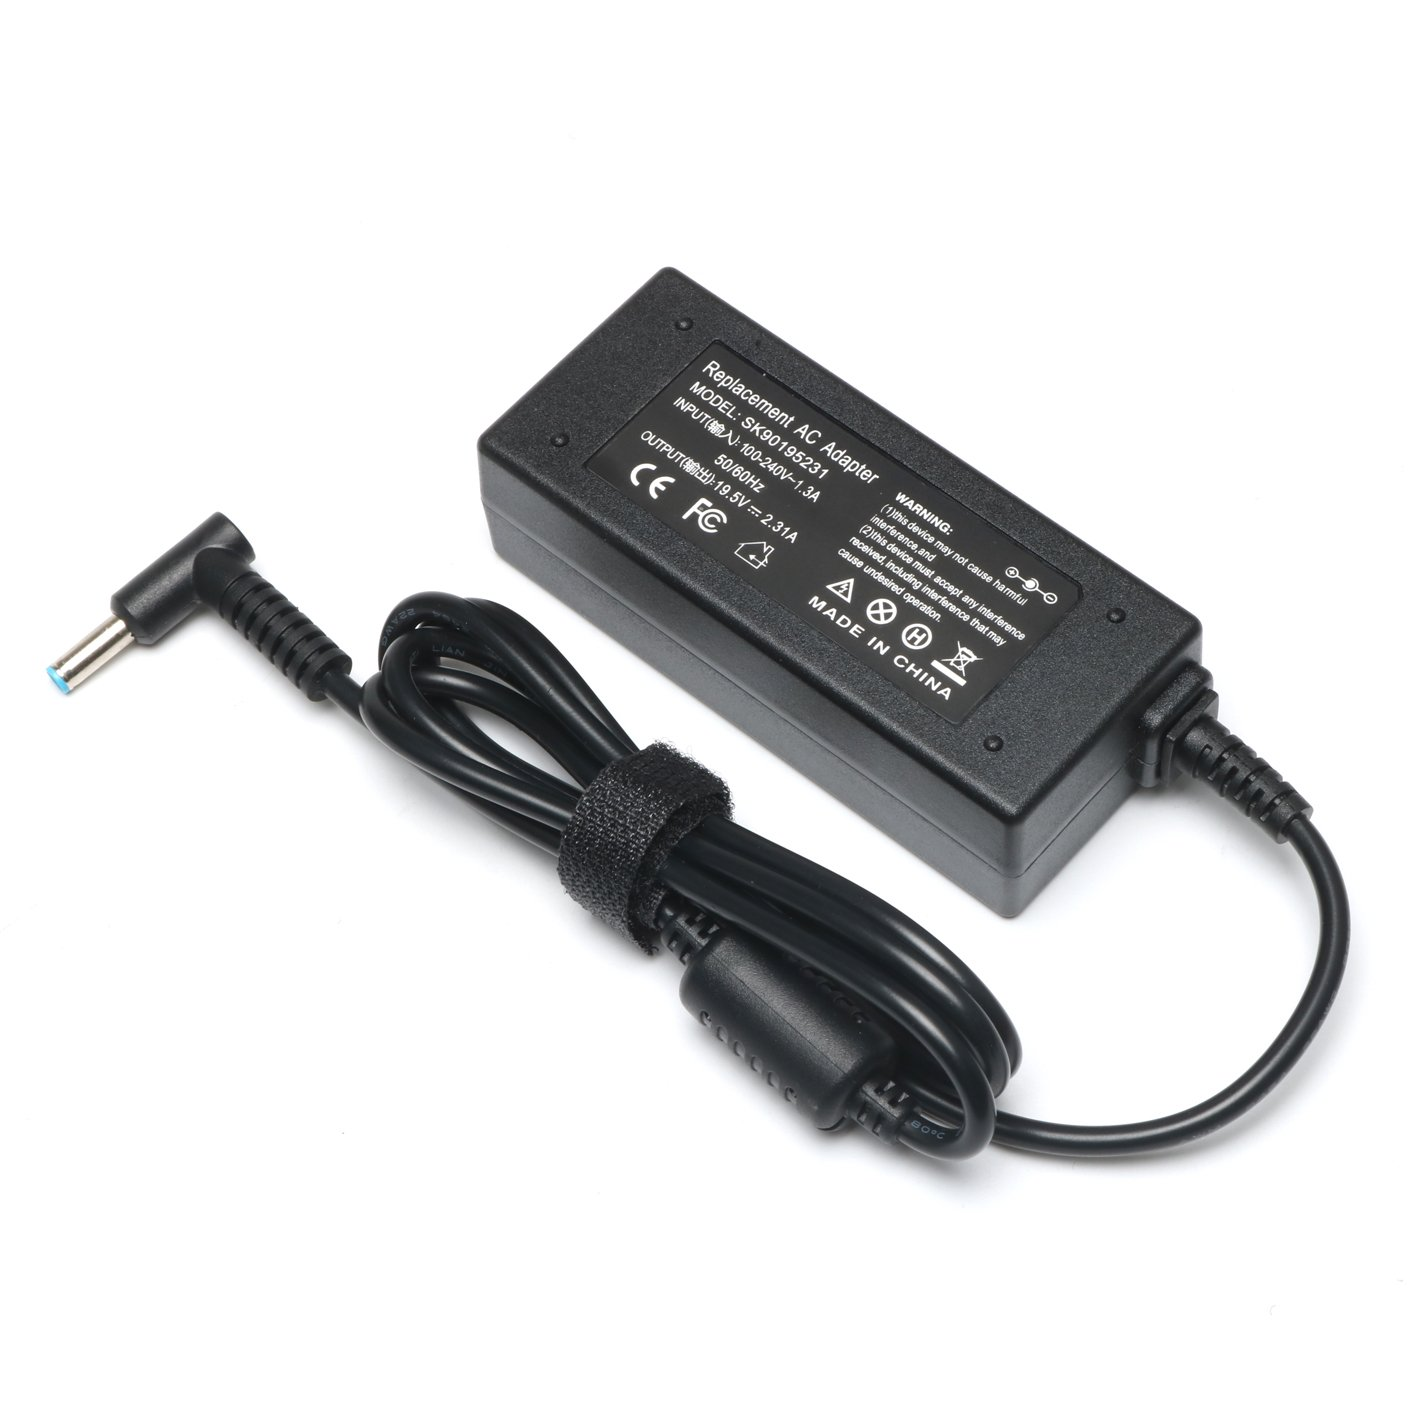 19V 2.31A 45W Ac Adapter/Power Cord Supply for Hp Stream 11 13 14; Hp Pavilion X2 11 13 15; P/N: 719309-001 719309-003 721092-001 741727-001 740015-001 HSTNN-CA40 ADP-45WD B by ROLADA (Image #4)